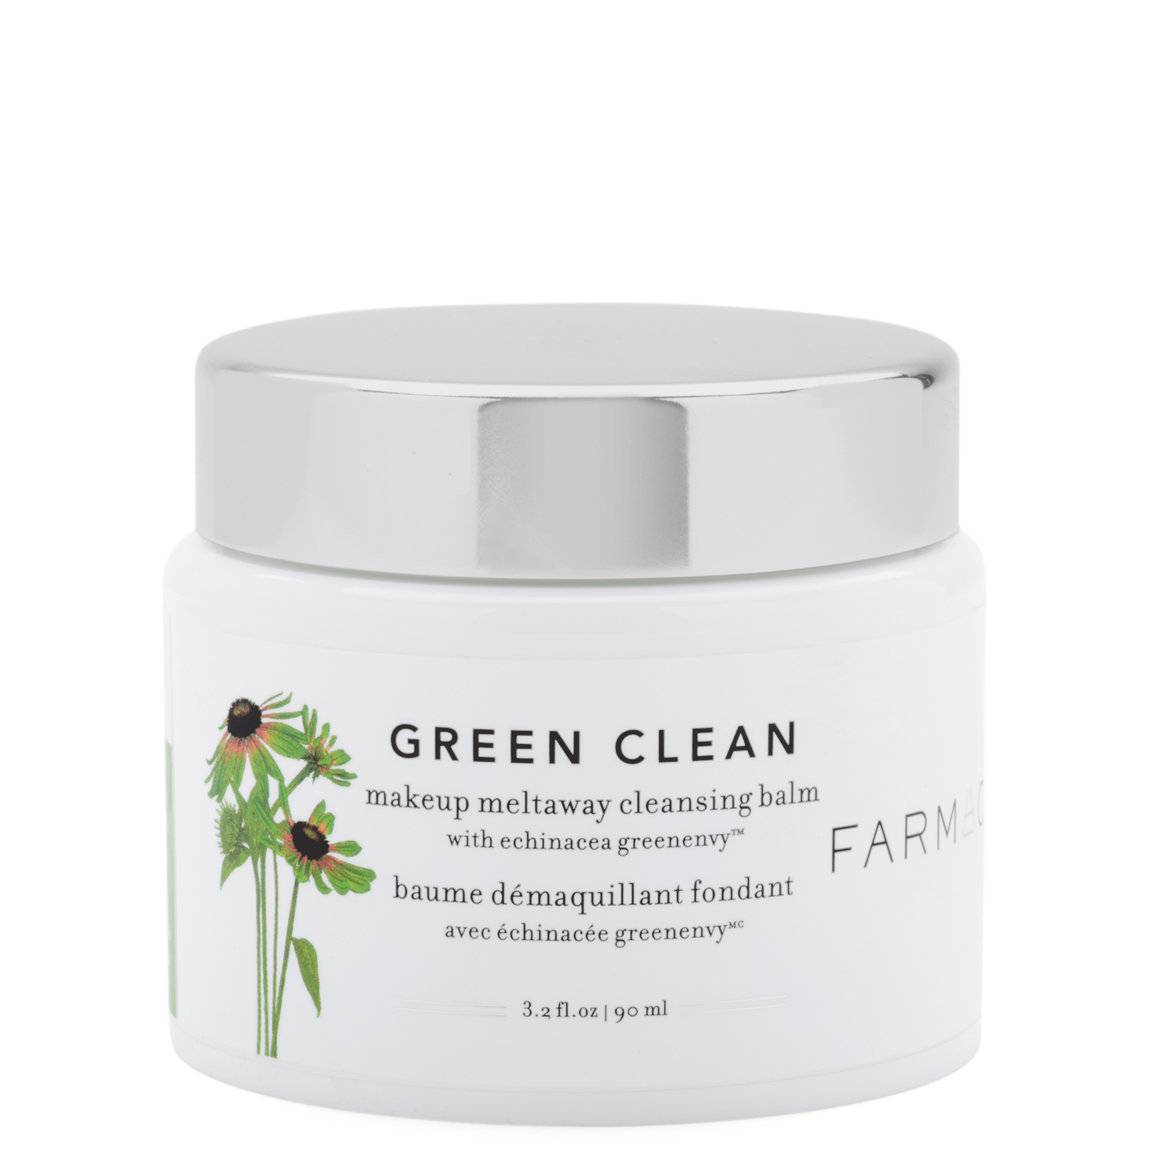 Farmacy Green Clean Makeup Meltaway Cleansing Balm 3.2 oz product smear.